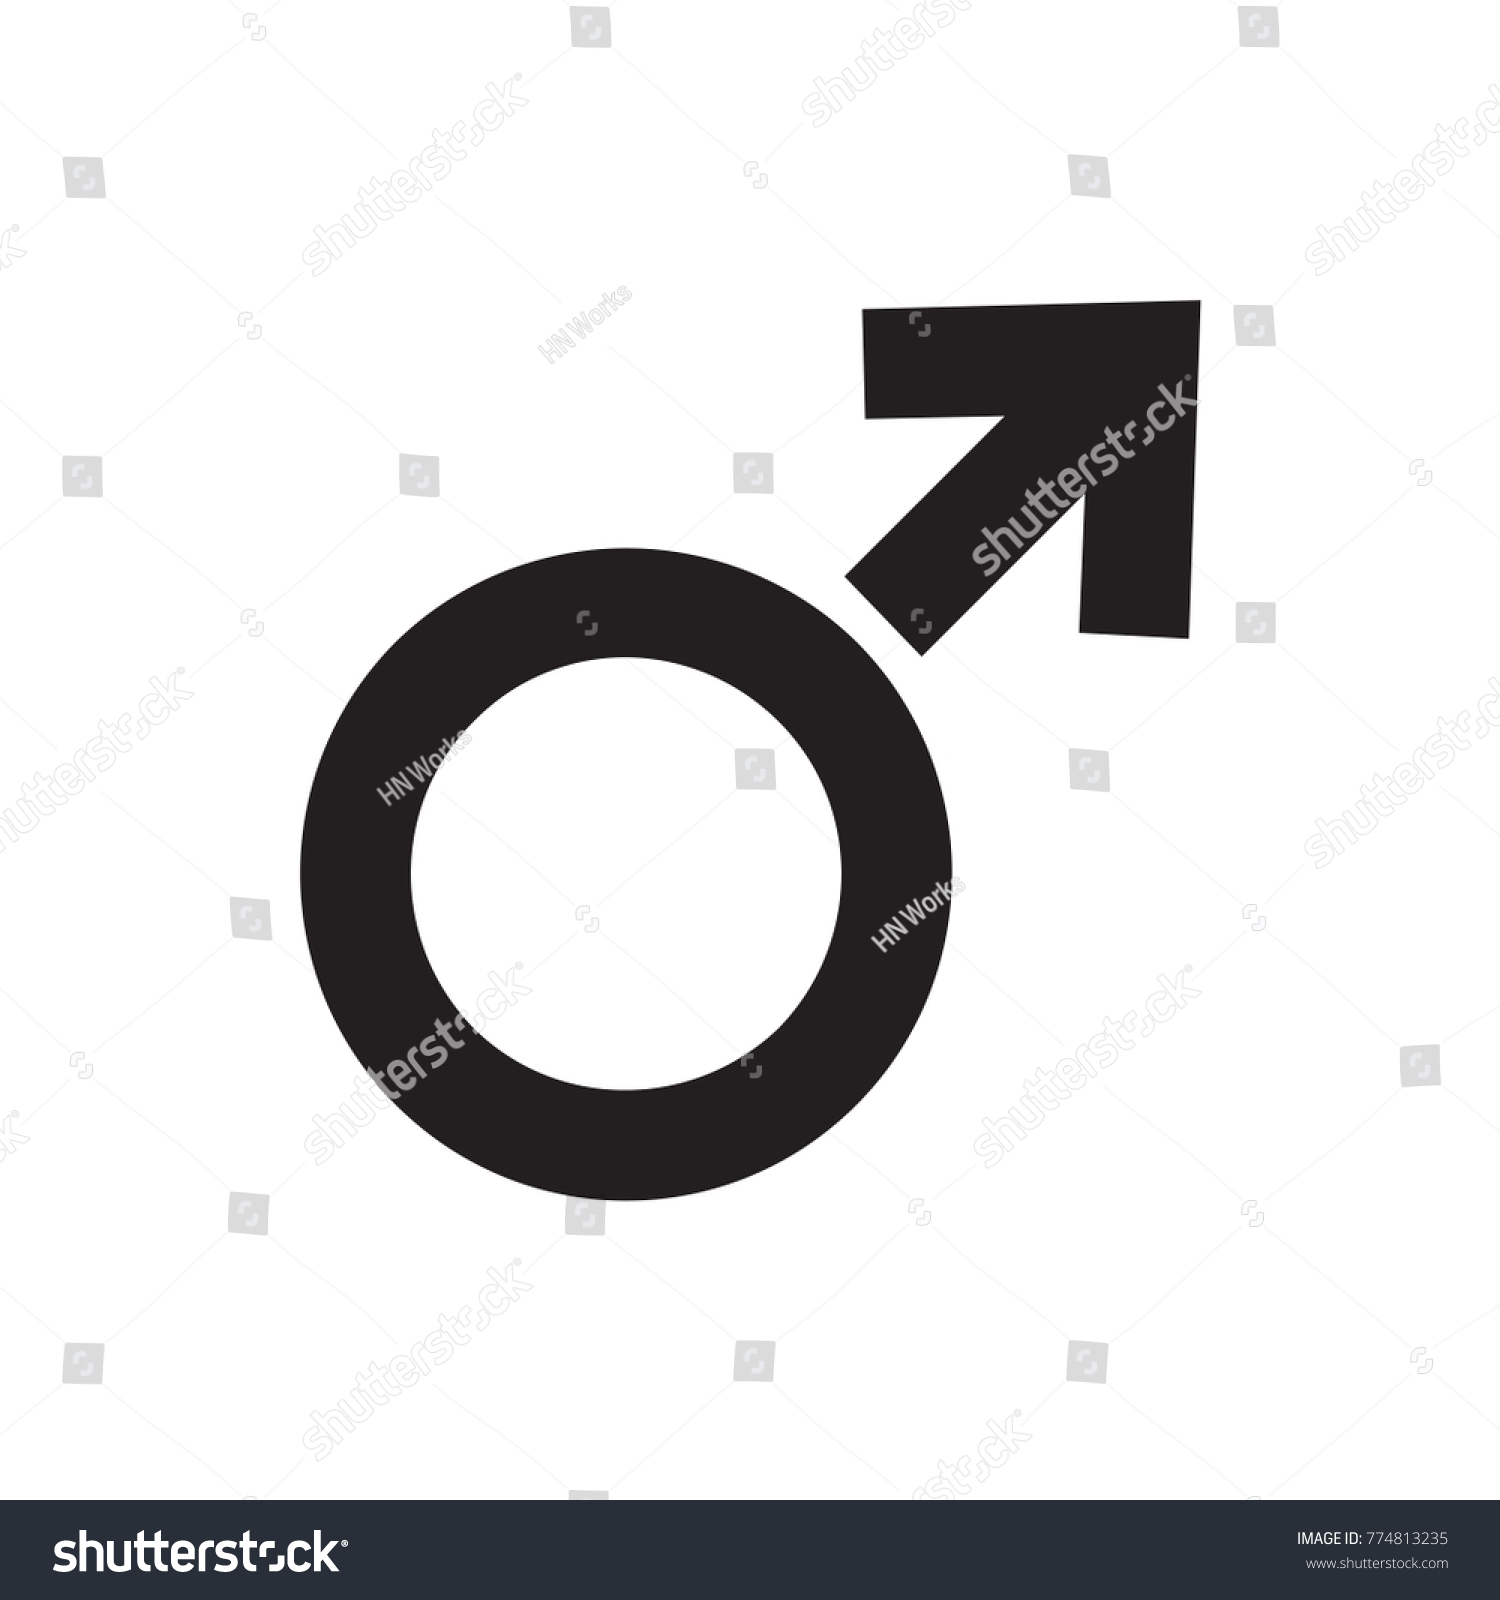 man symbol icon illustration isolated vector sign symbol #774813235